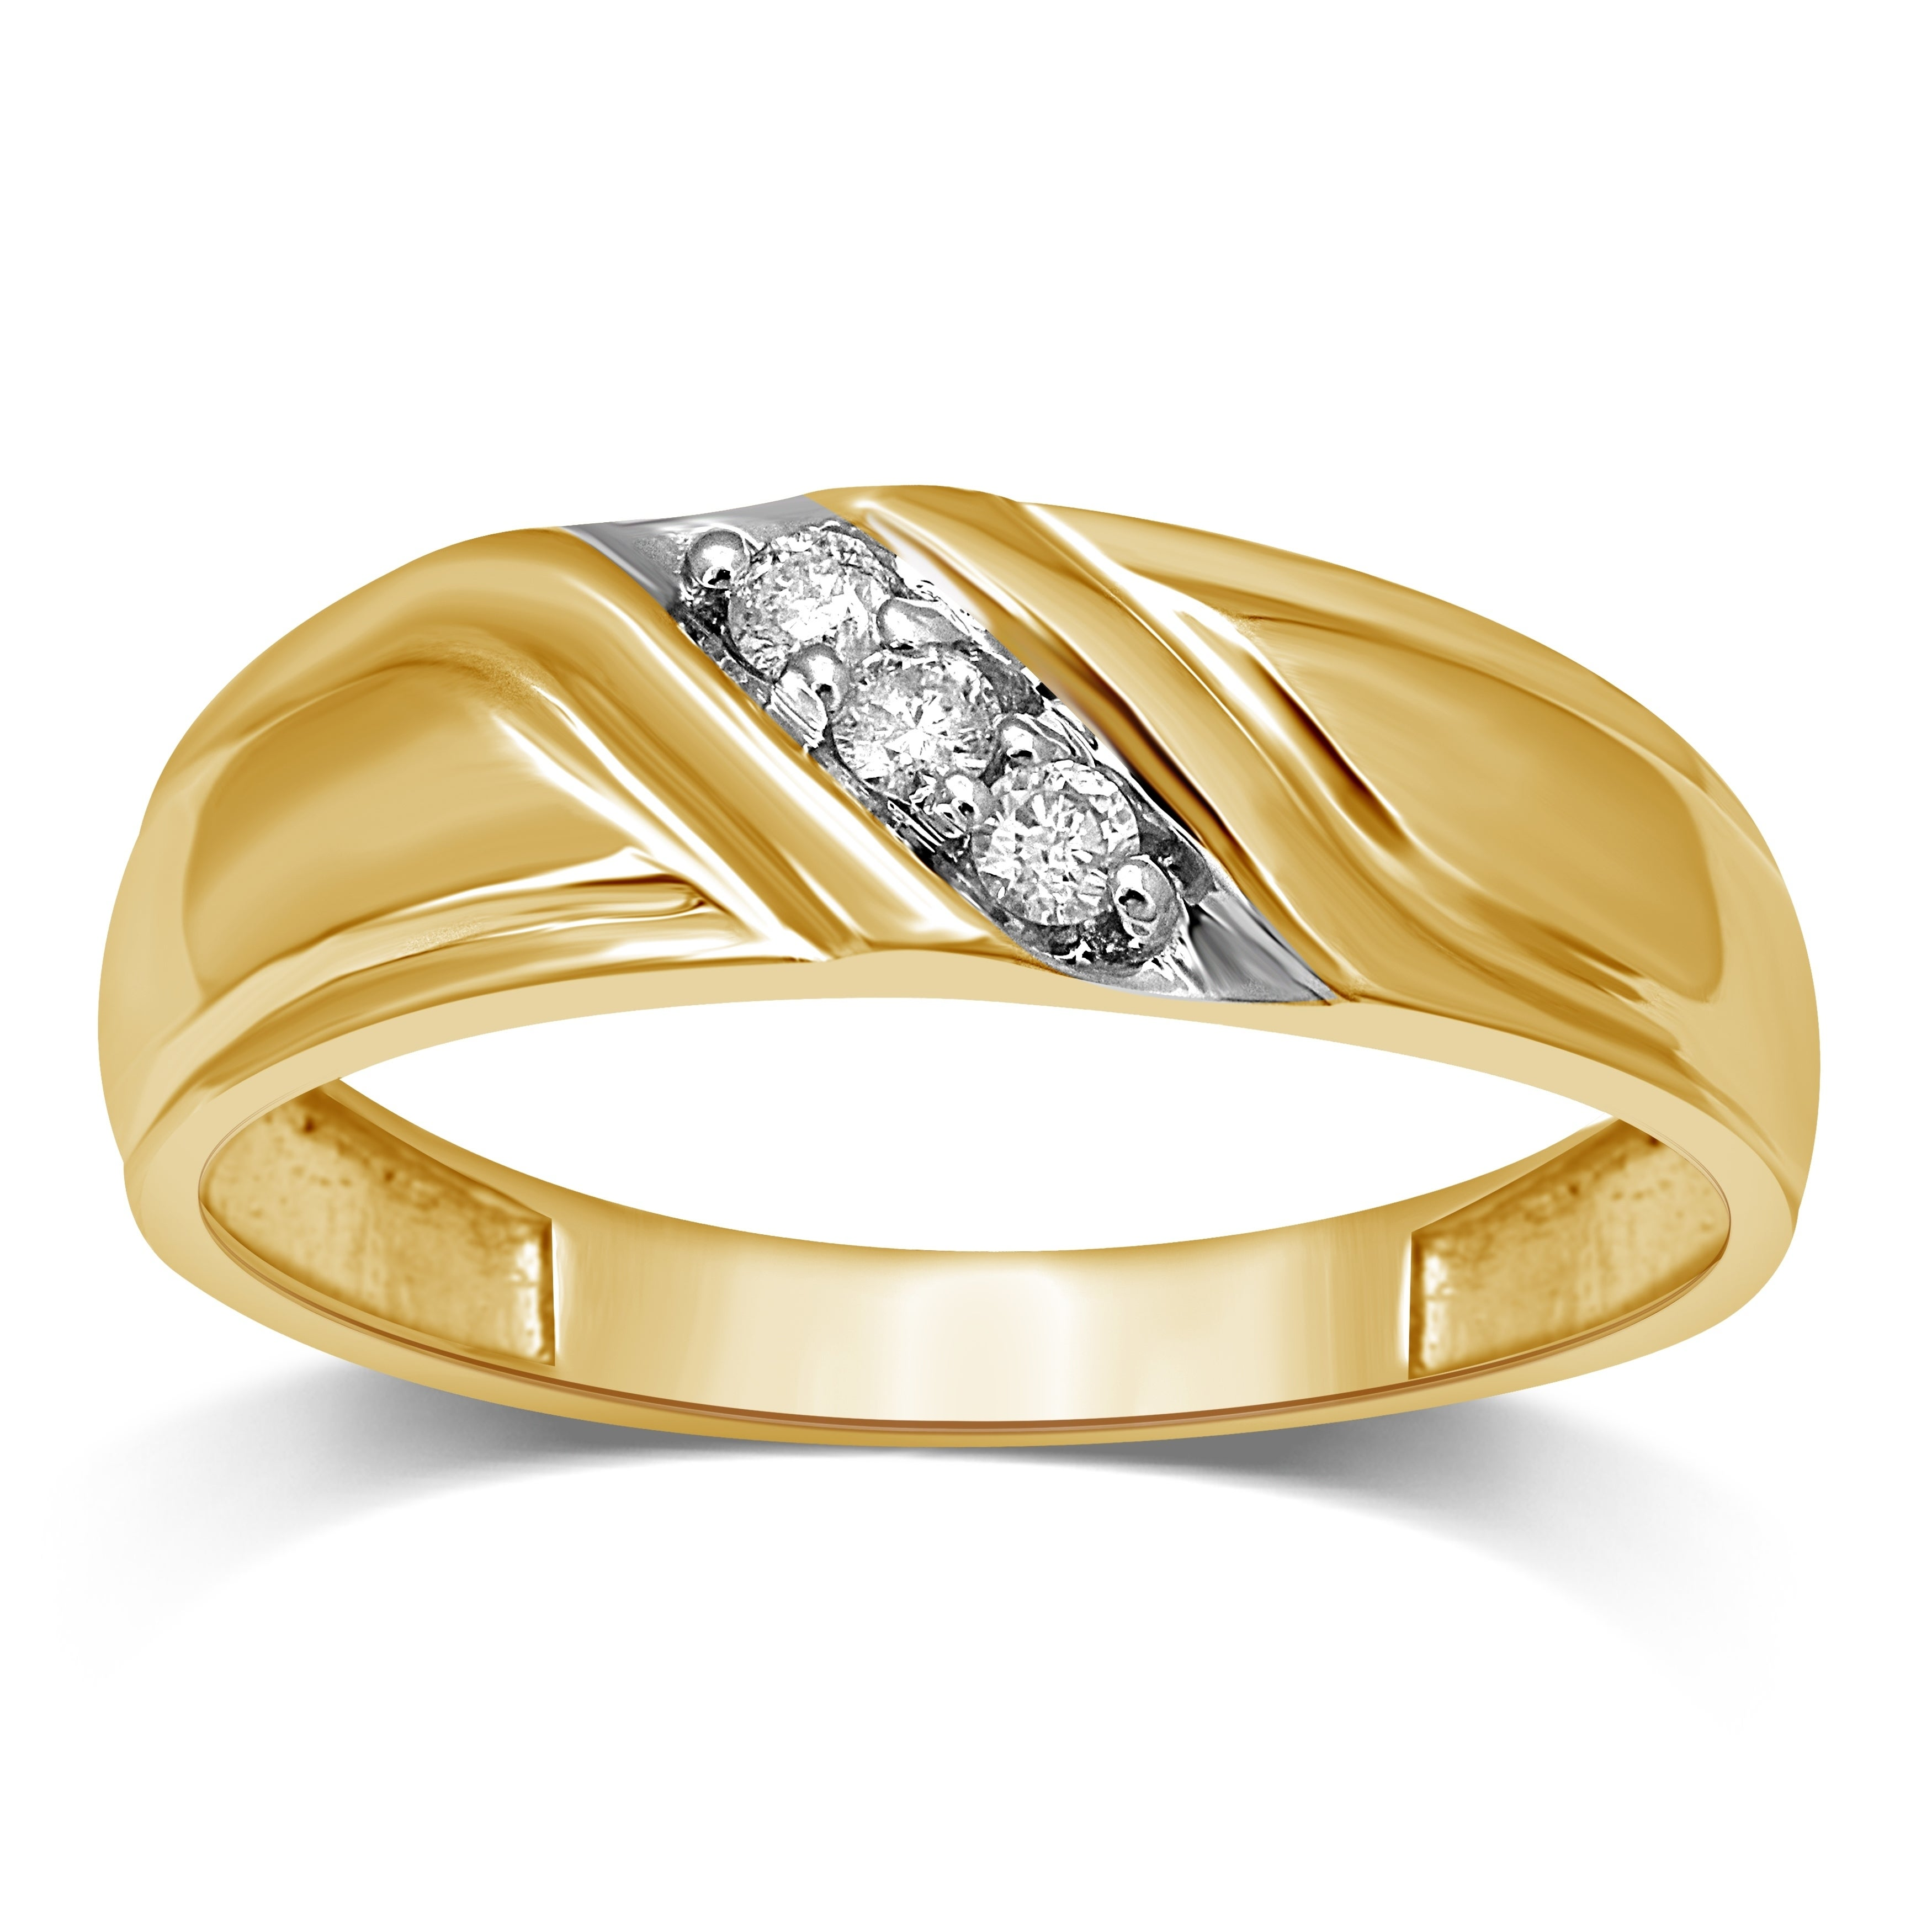 Shop Unending Love Men S 10k Gold 1 10 Ctw Diamond Wedding Band On Sale Overstock 10277528